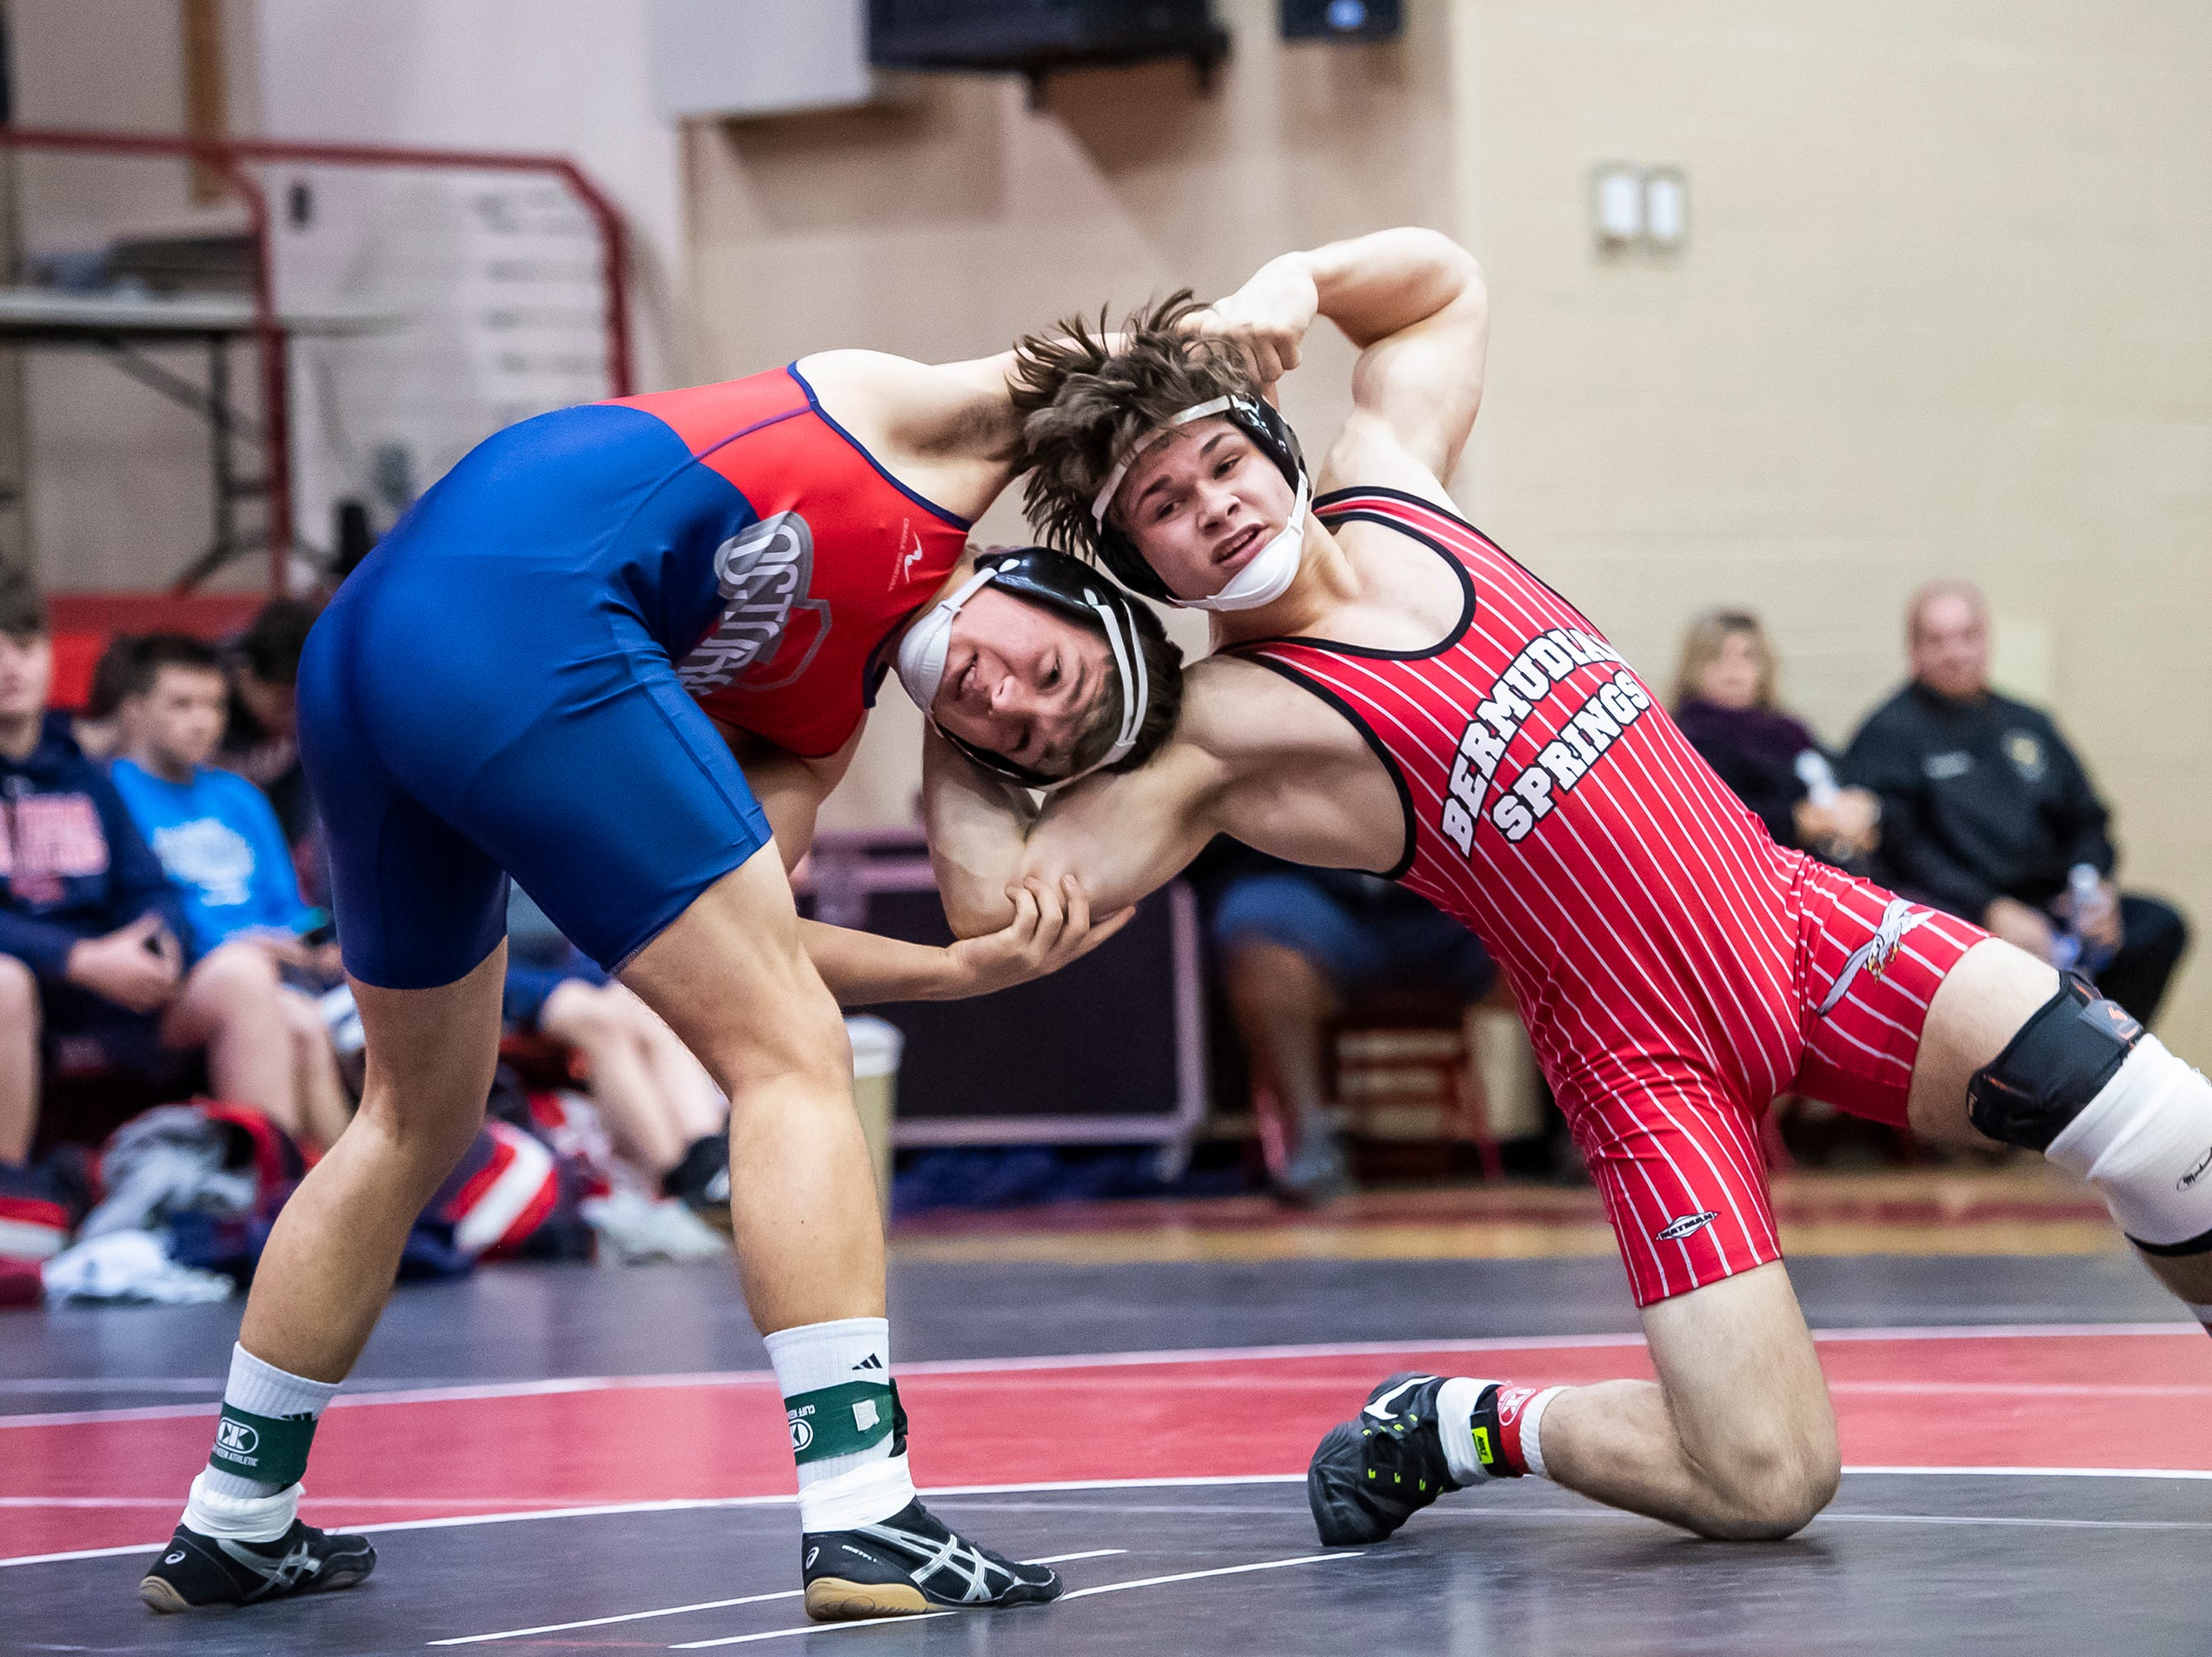 Bermudian Springs' Alijah Wheeler wrestles Octorara's Gavin Camerote in the 170-pound bout during a PIAA District III 2A quarterfinal match at Cumberland Valley High School January 31, 2019. The Eagles beat Octorara 42-23.